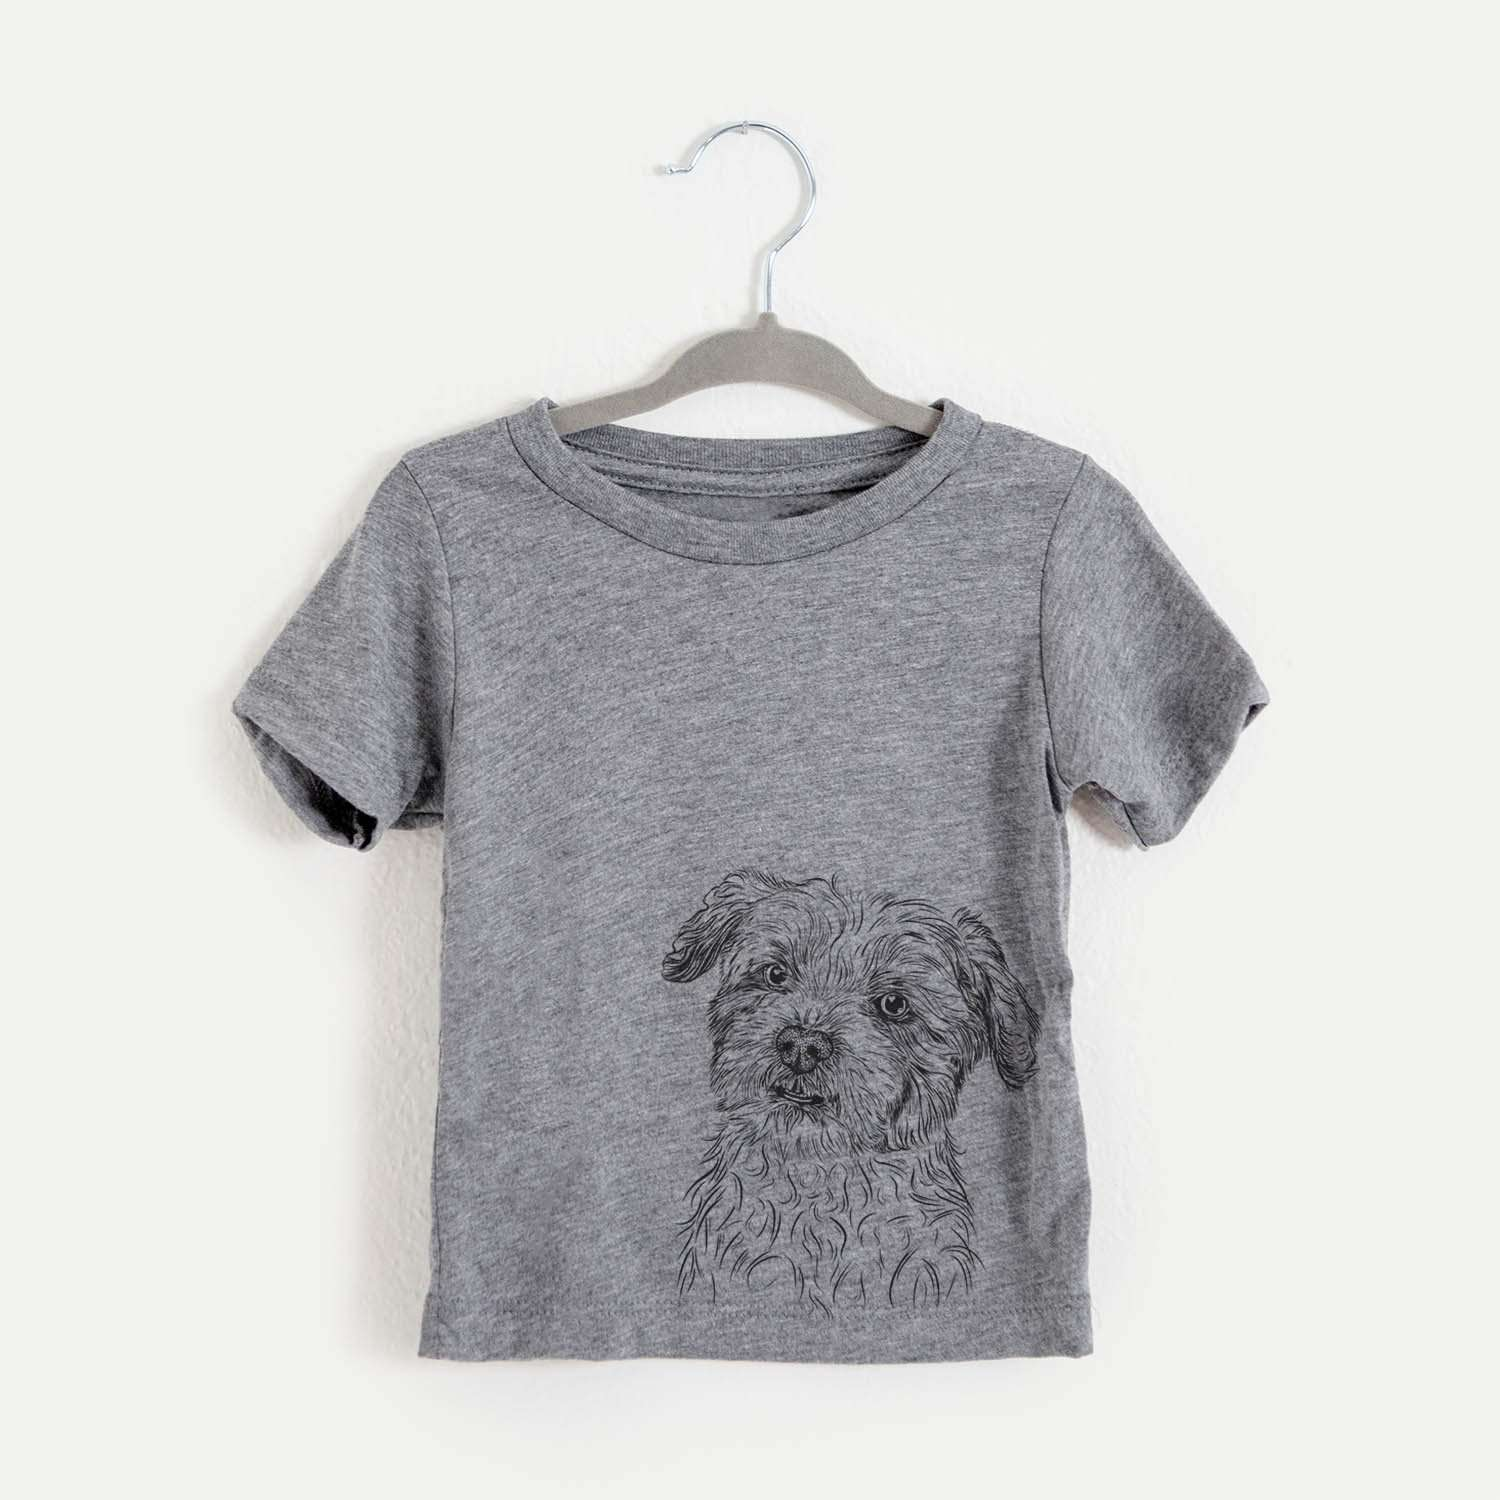 Roxie the Schnauzer Shih Tzu Mix - Kids/Youth/Toddler Shirt